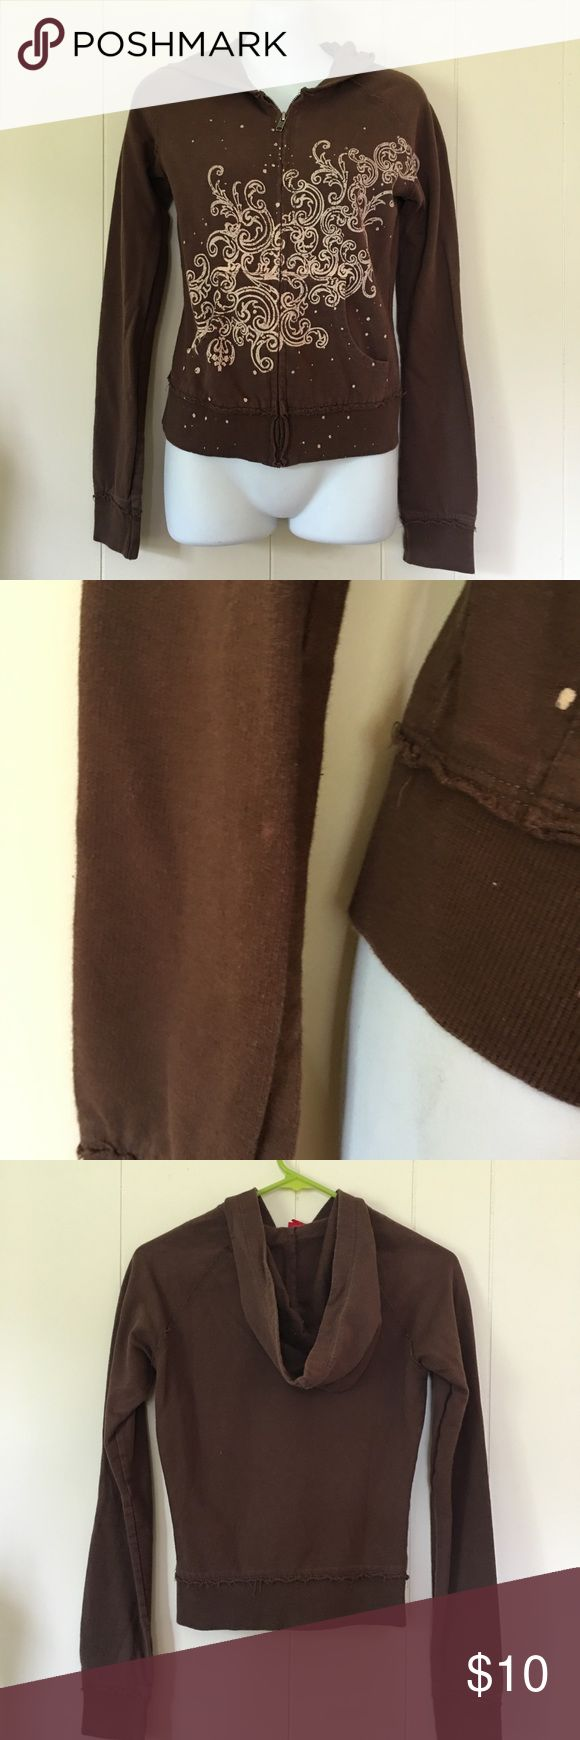 Brown Zip Up Brown Zip up hooded sweatshirt with a cool design Size small Good condition but it does have a small spot shown in picture Tops Sweatshirts & Hoodies